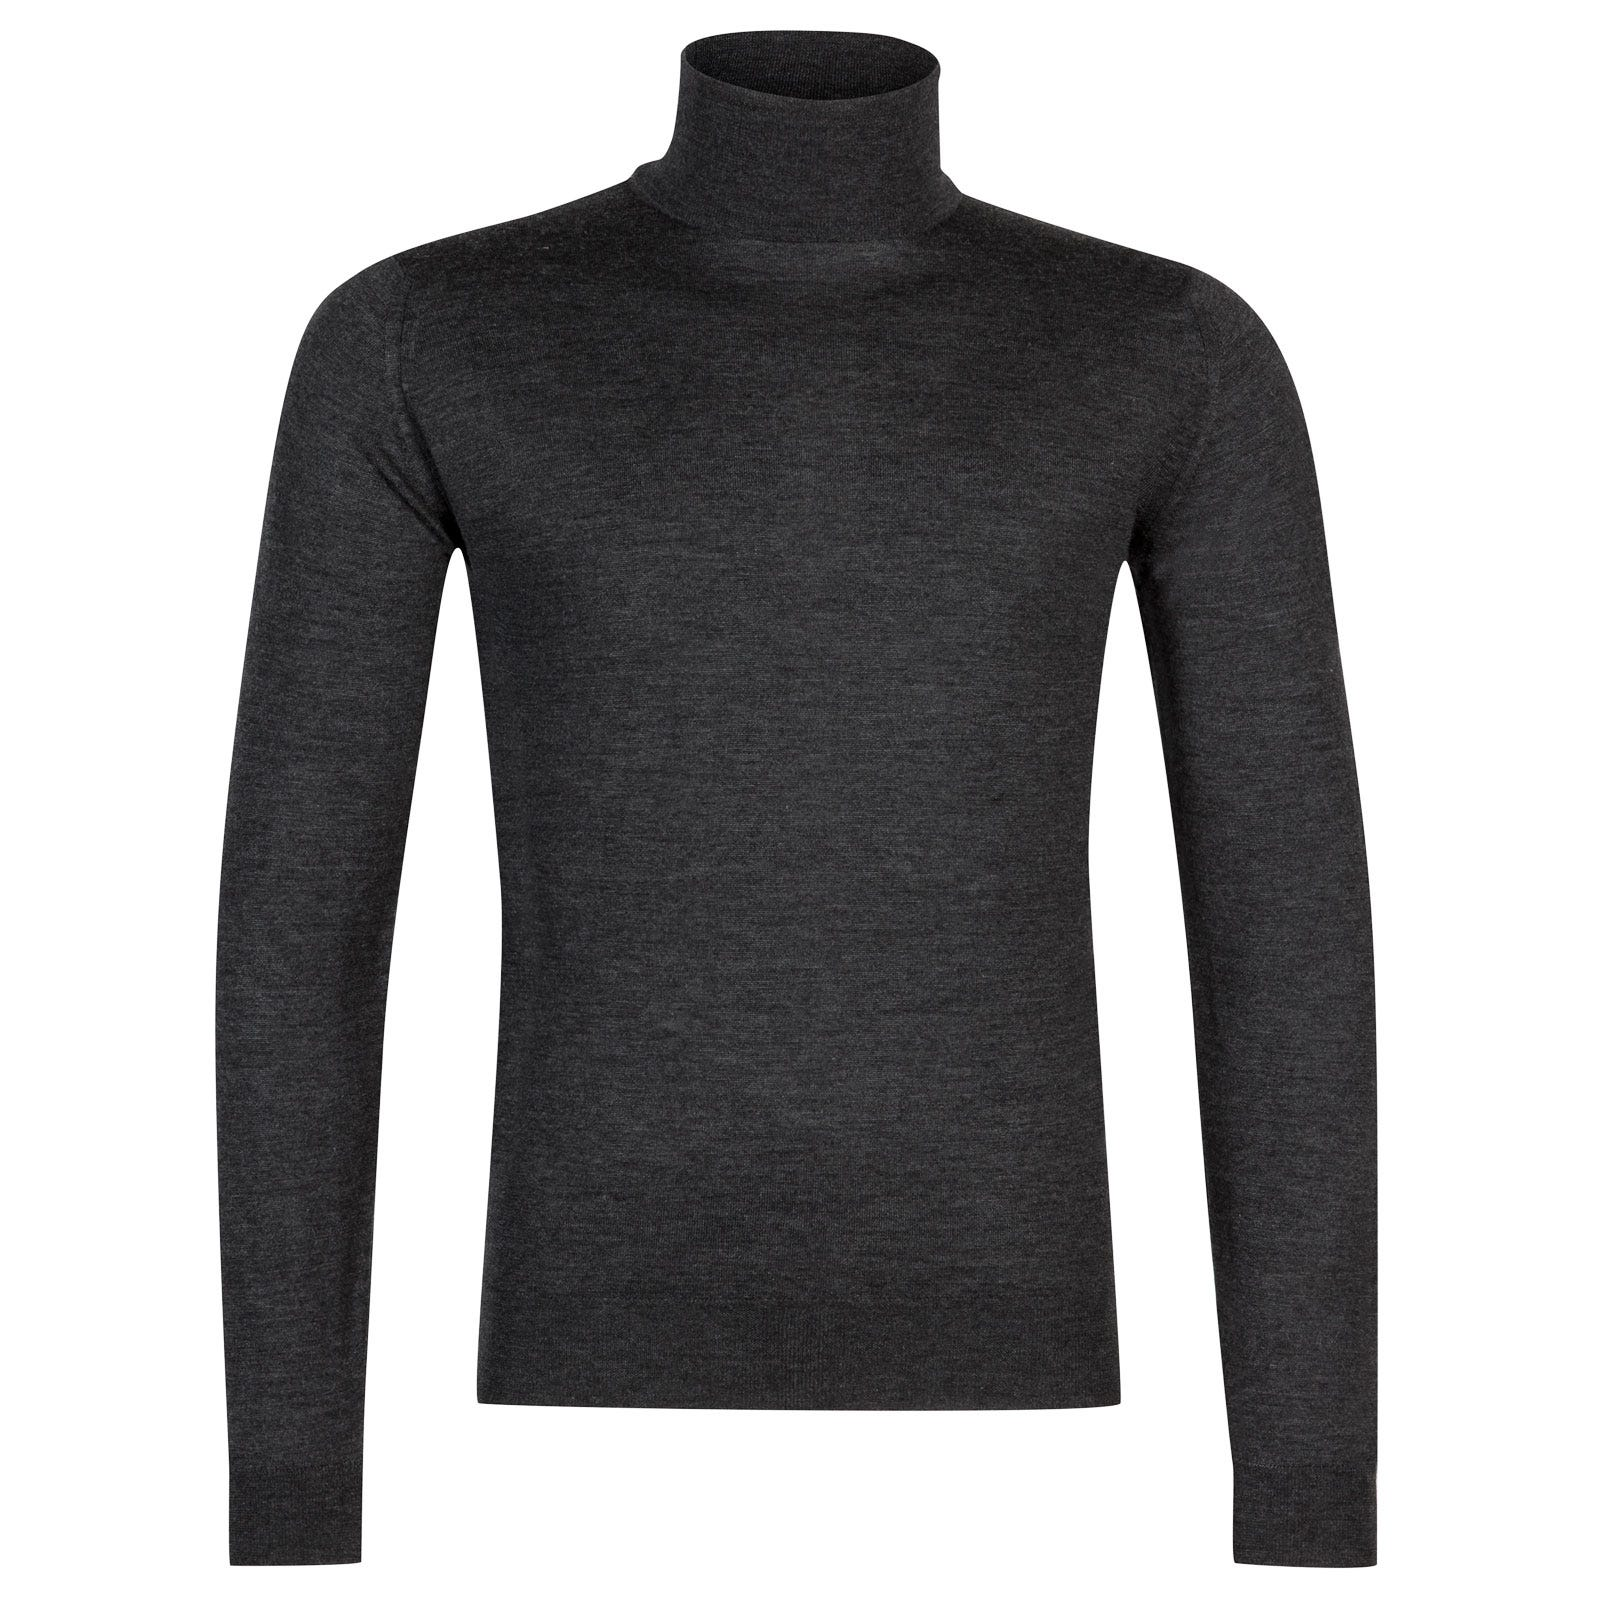 John Smedley arlington Merino Wool and Cashmere Pullover in Charcoal-L